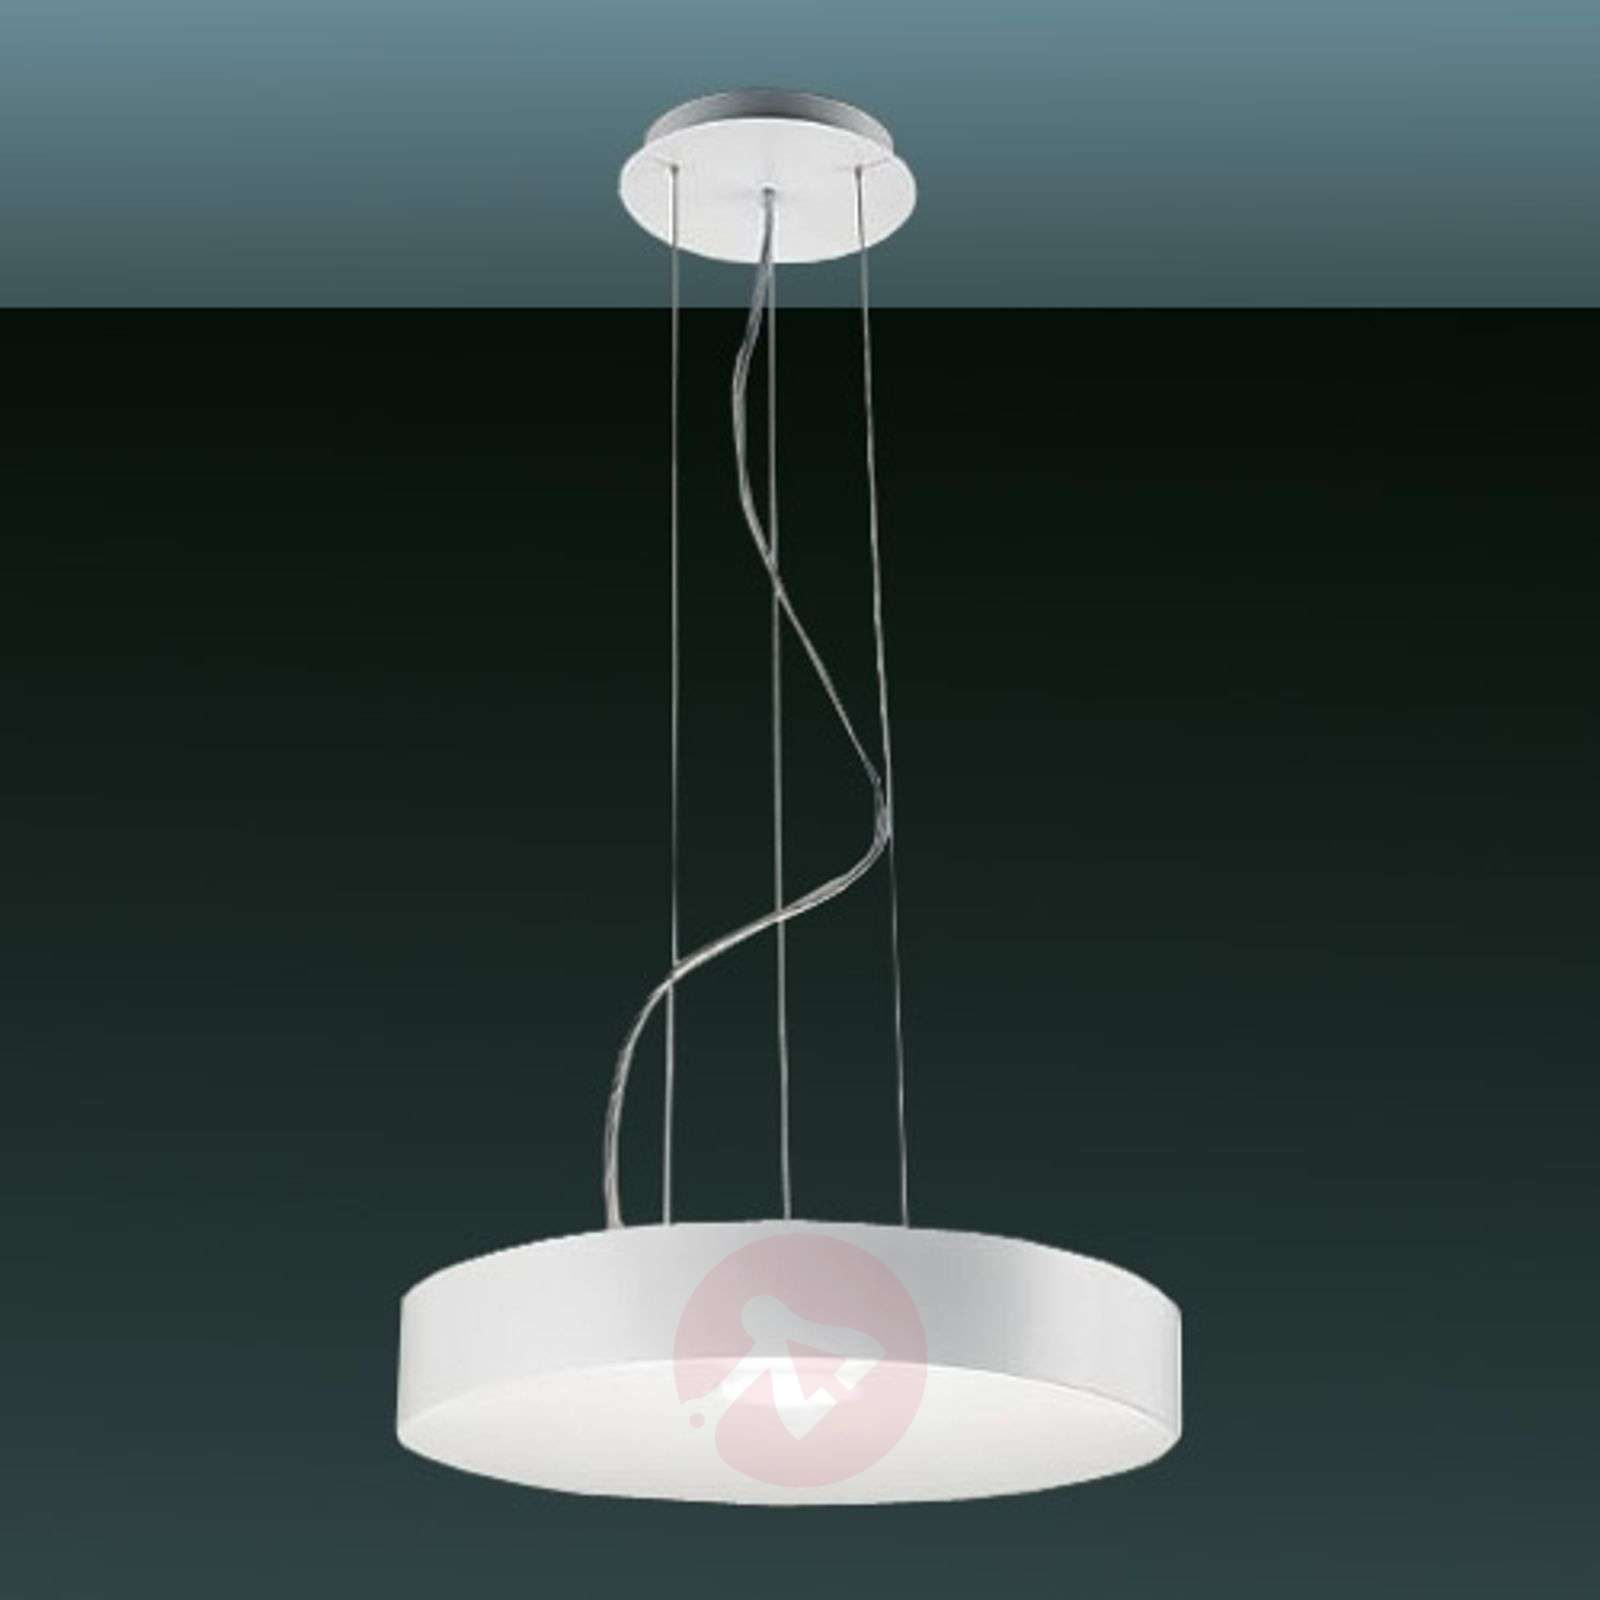 Led-hanglamp CRATER-3042027X-01